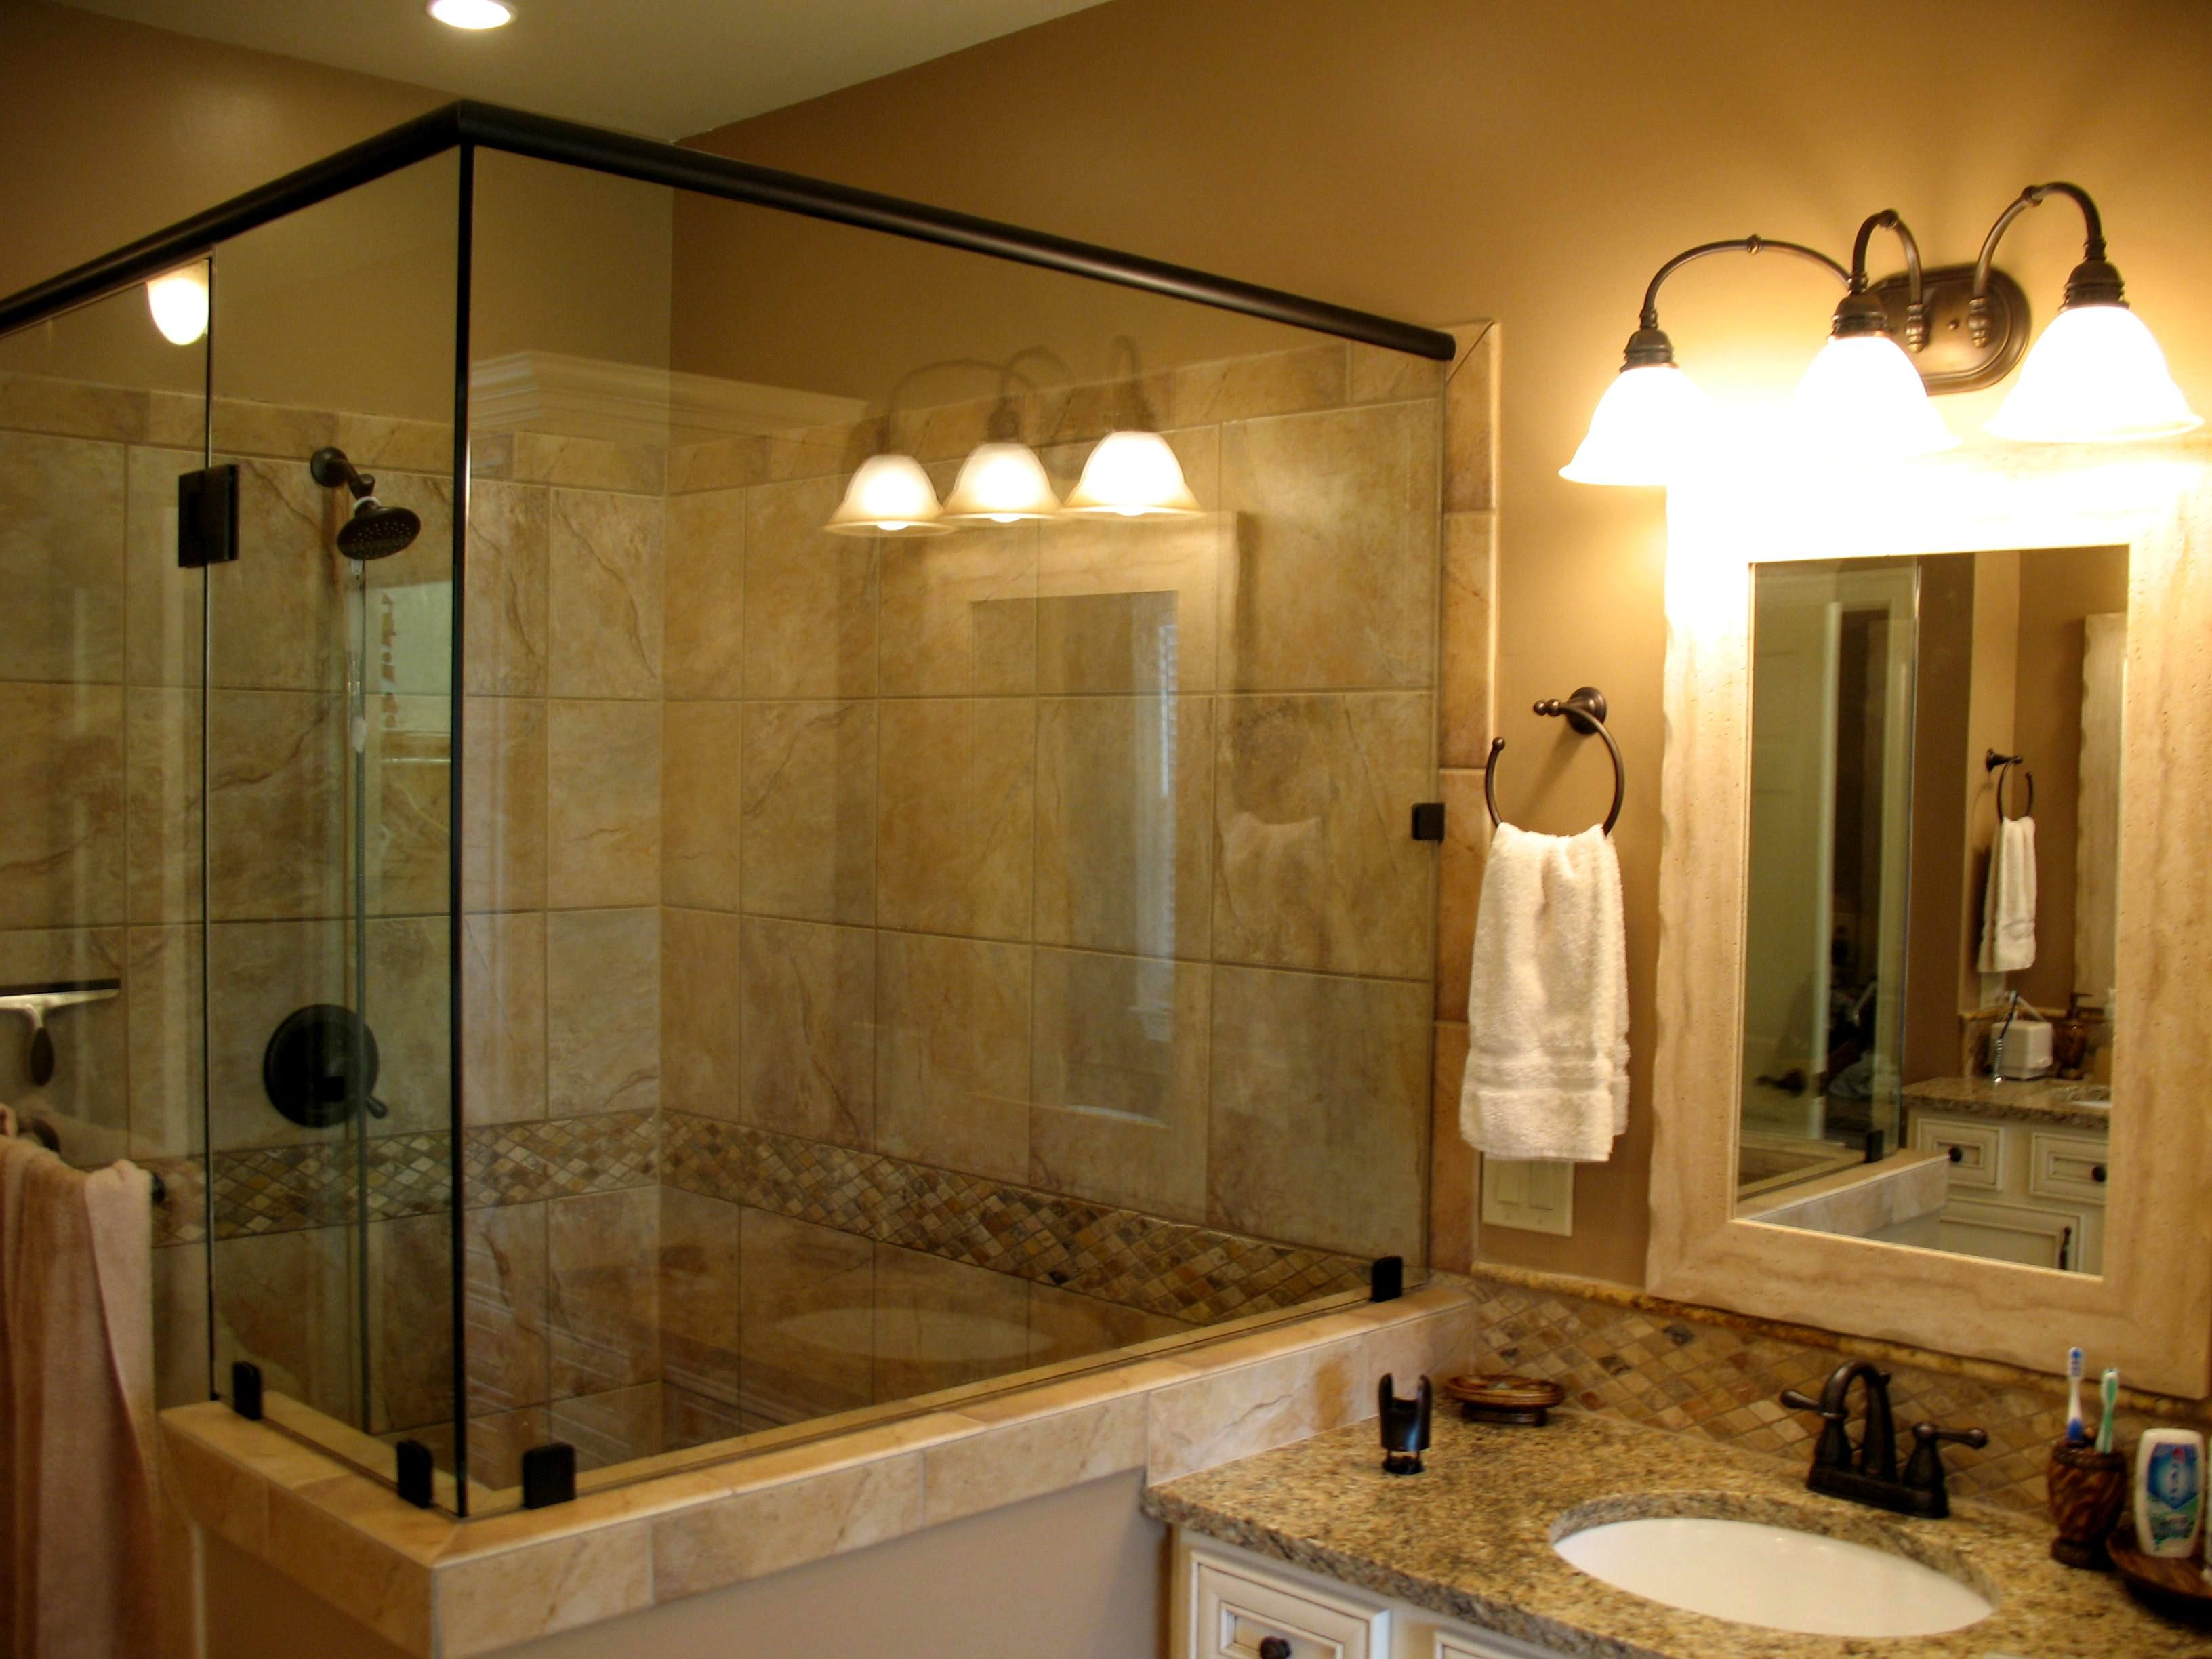 bathroom by sacramento ca remodeling remodel projects yancey contractors company contractor